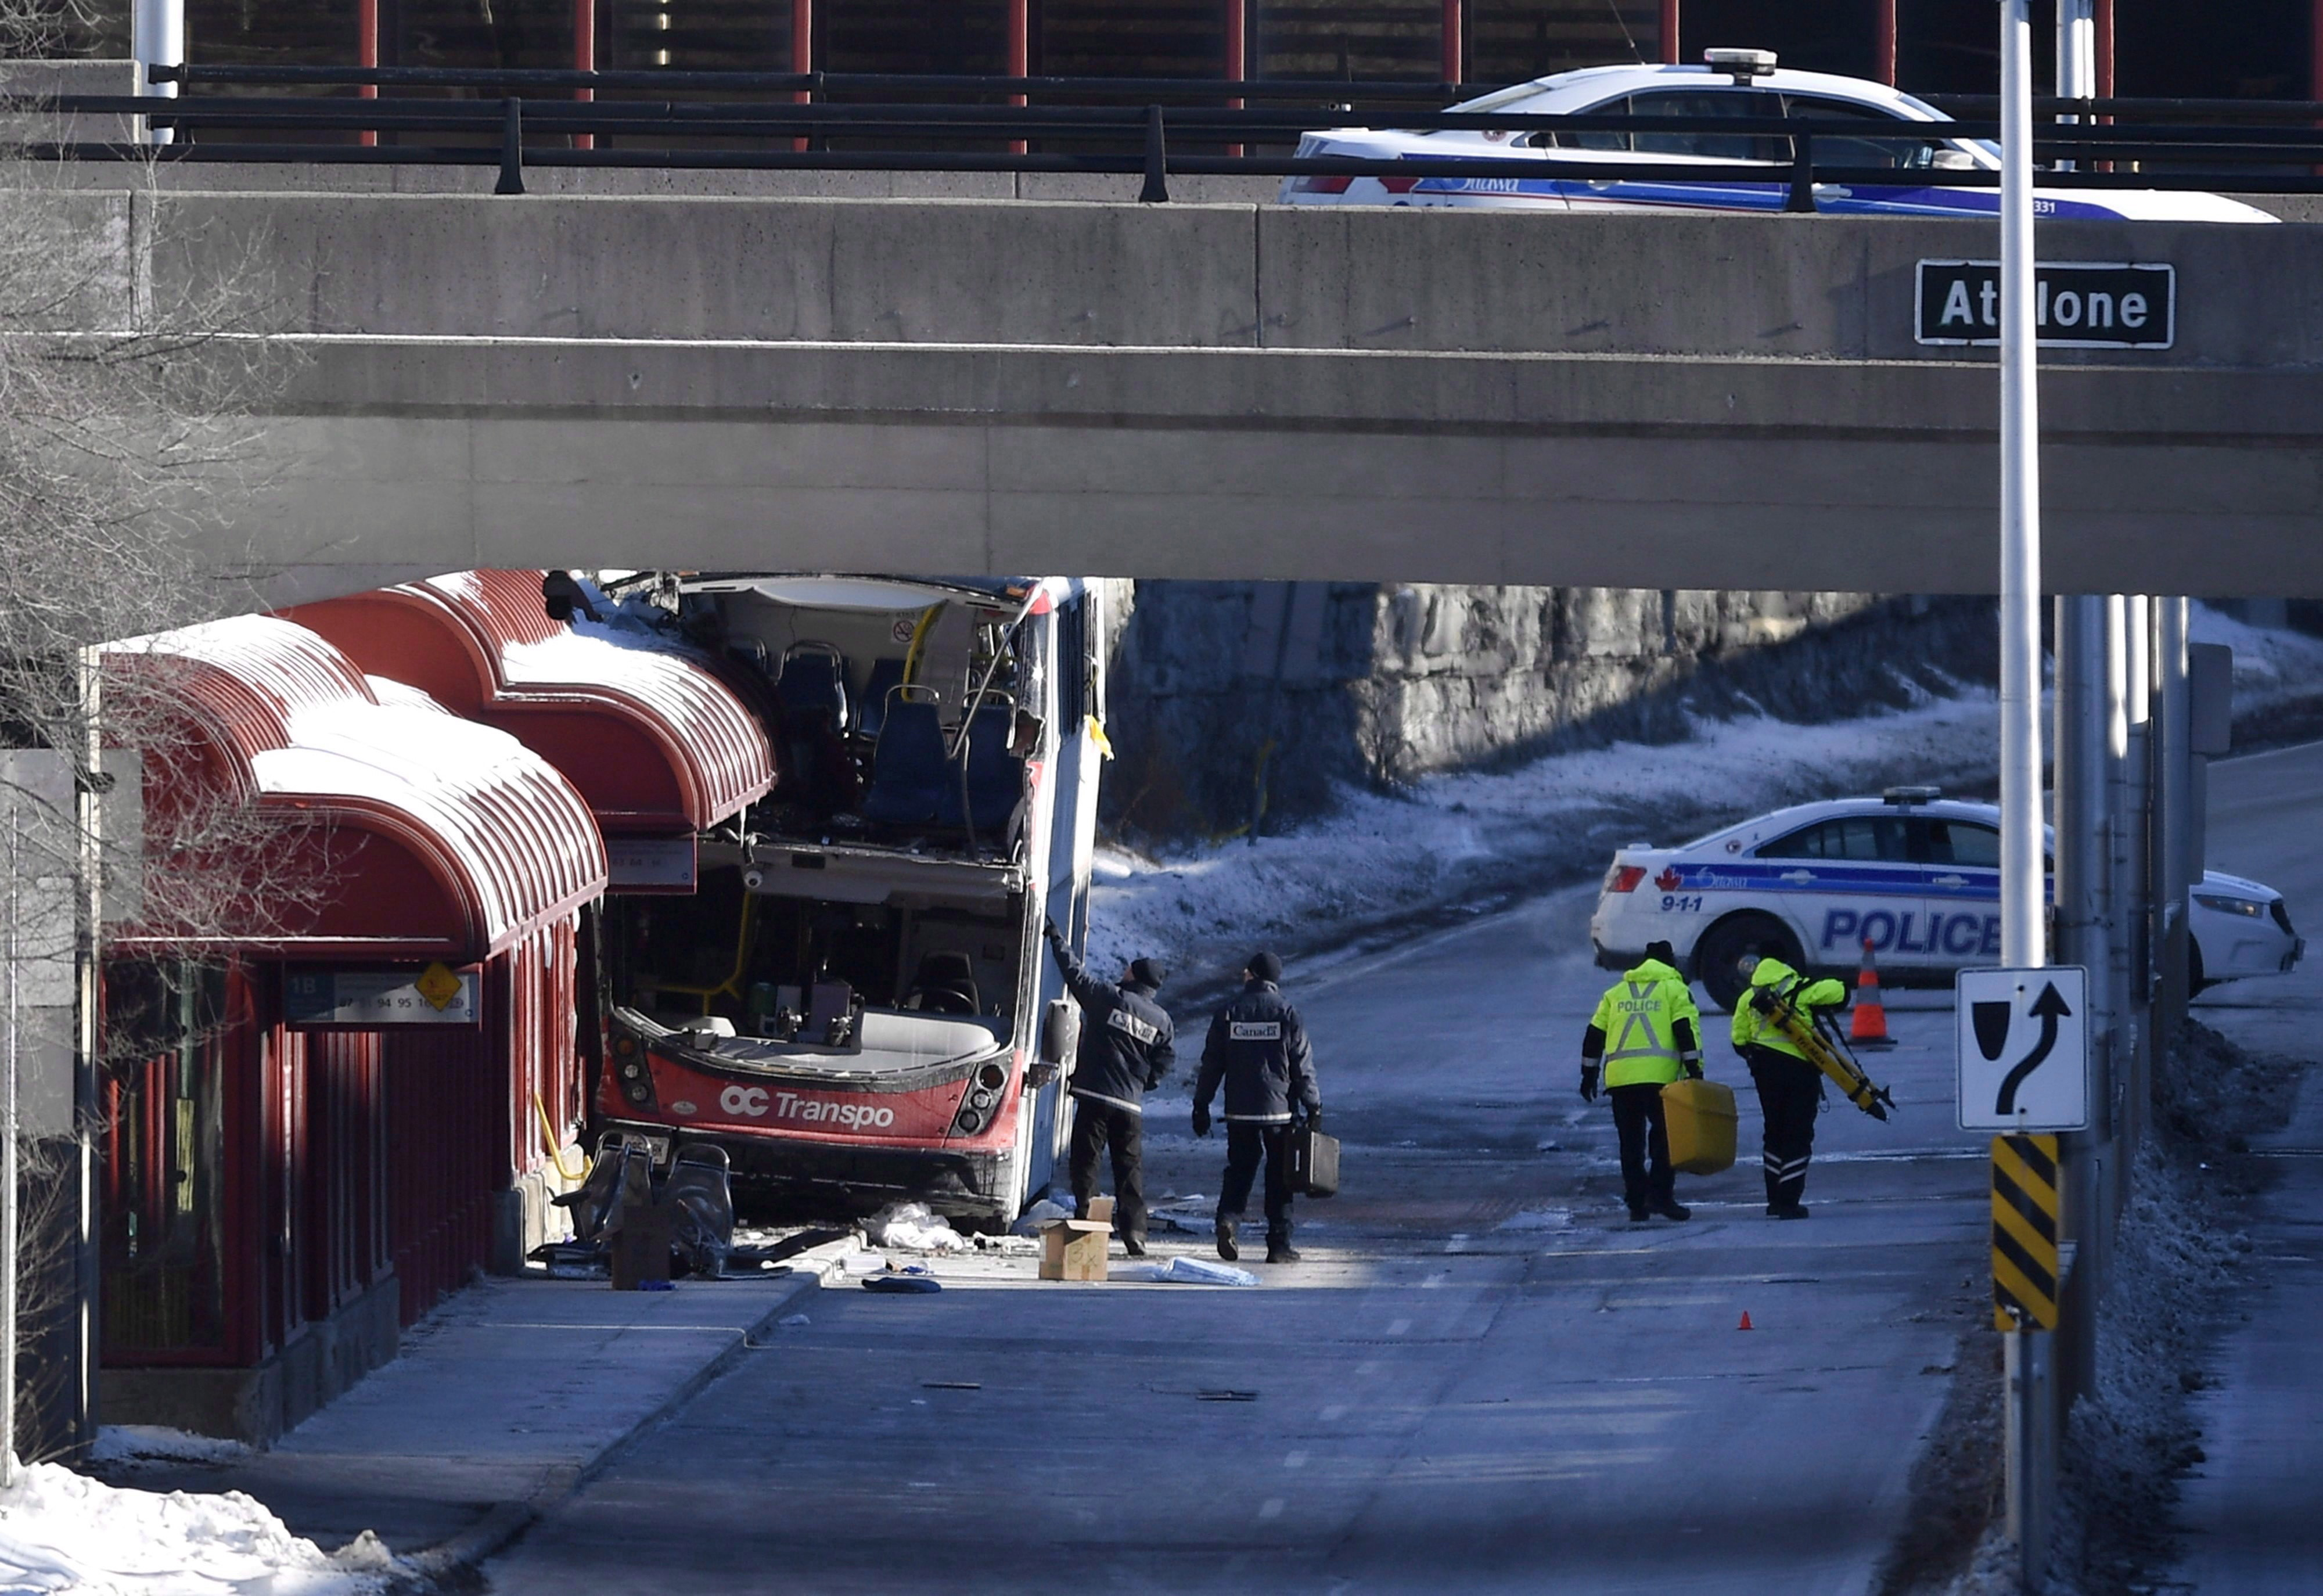 Ottawa Police Charge Transit Driver With 38 Offences in Deadly Bus Crash